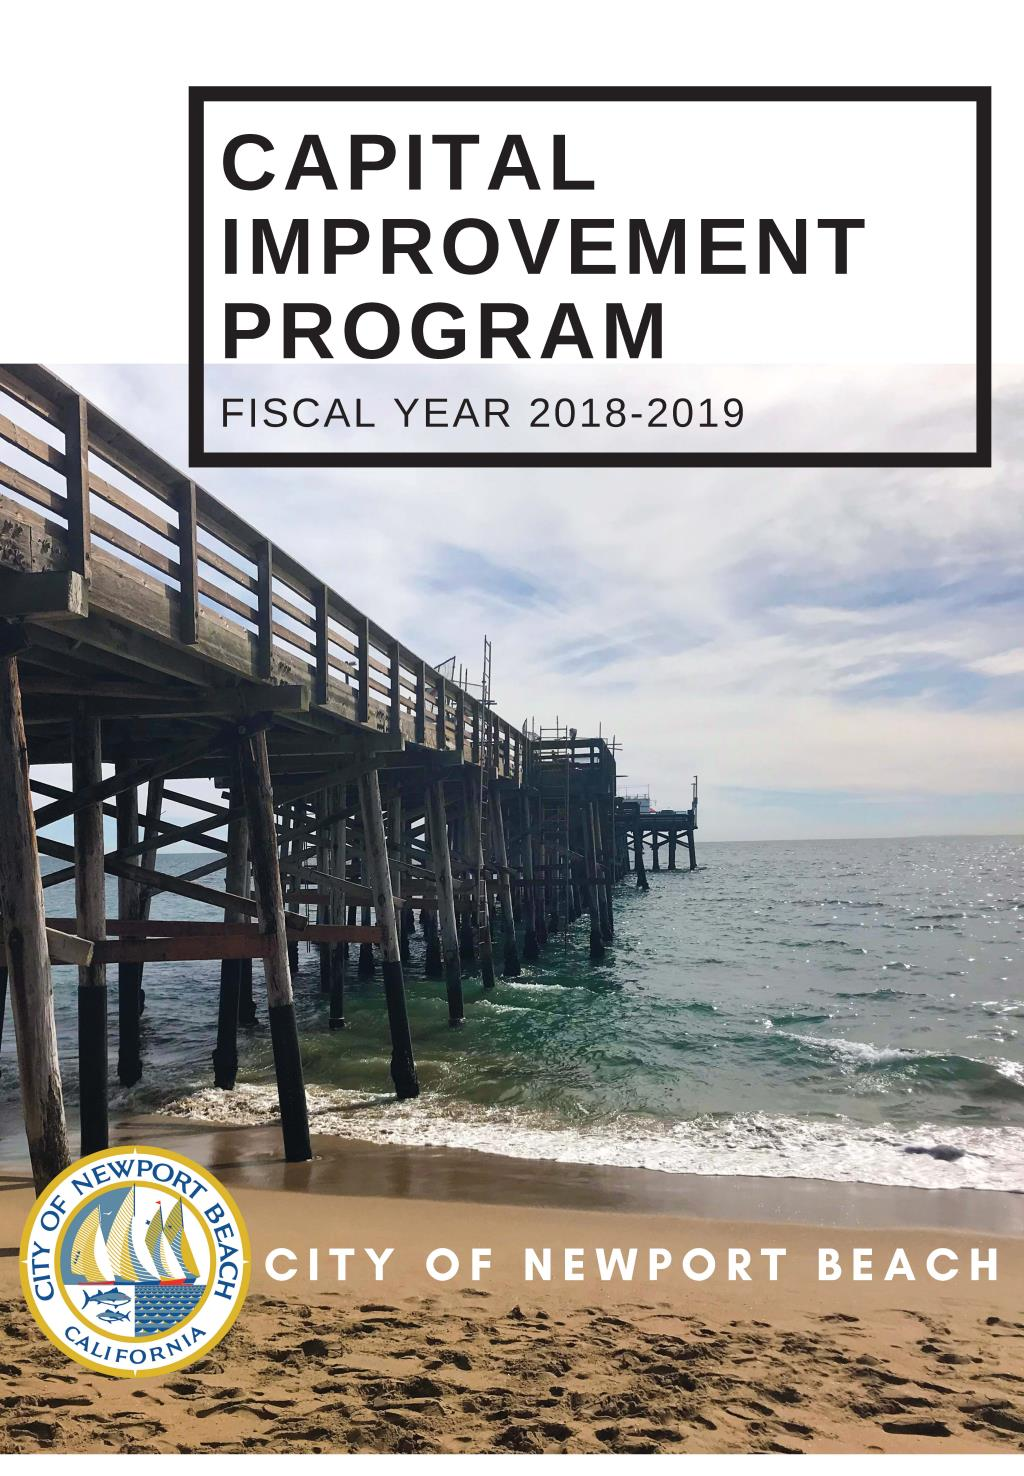 000 COVERS capital improvement program FY19_Page_1